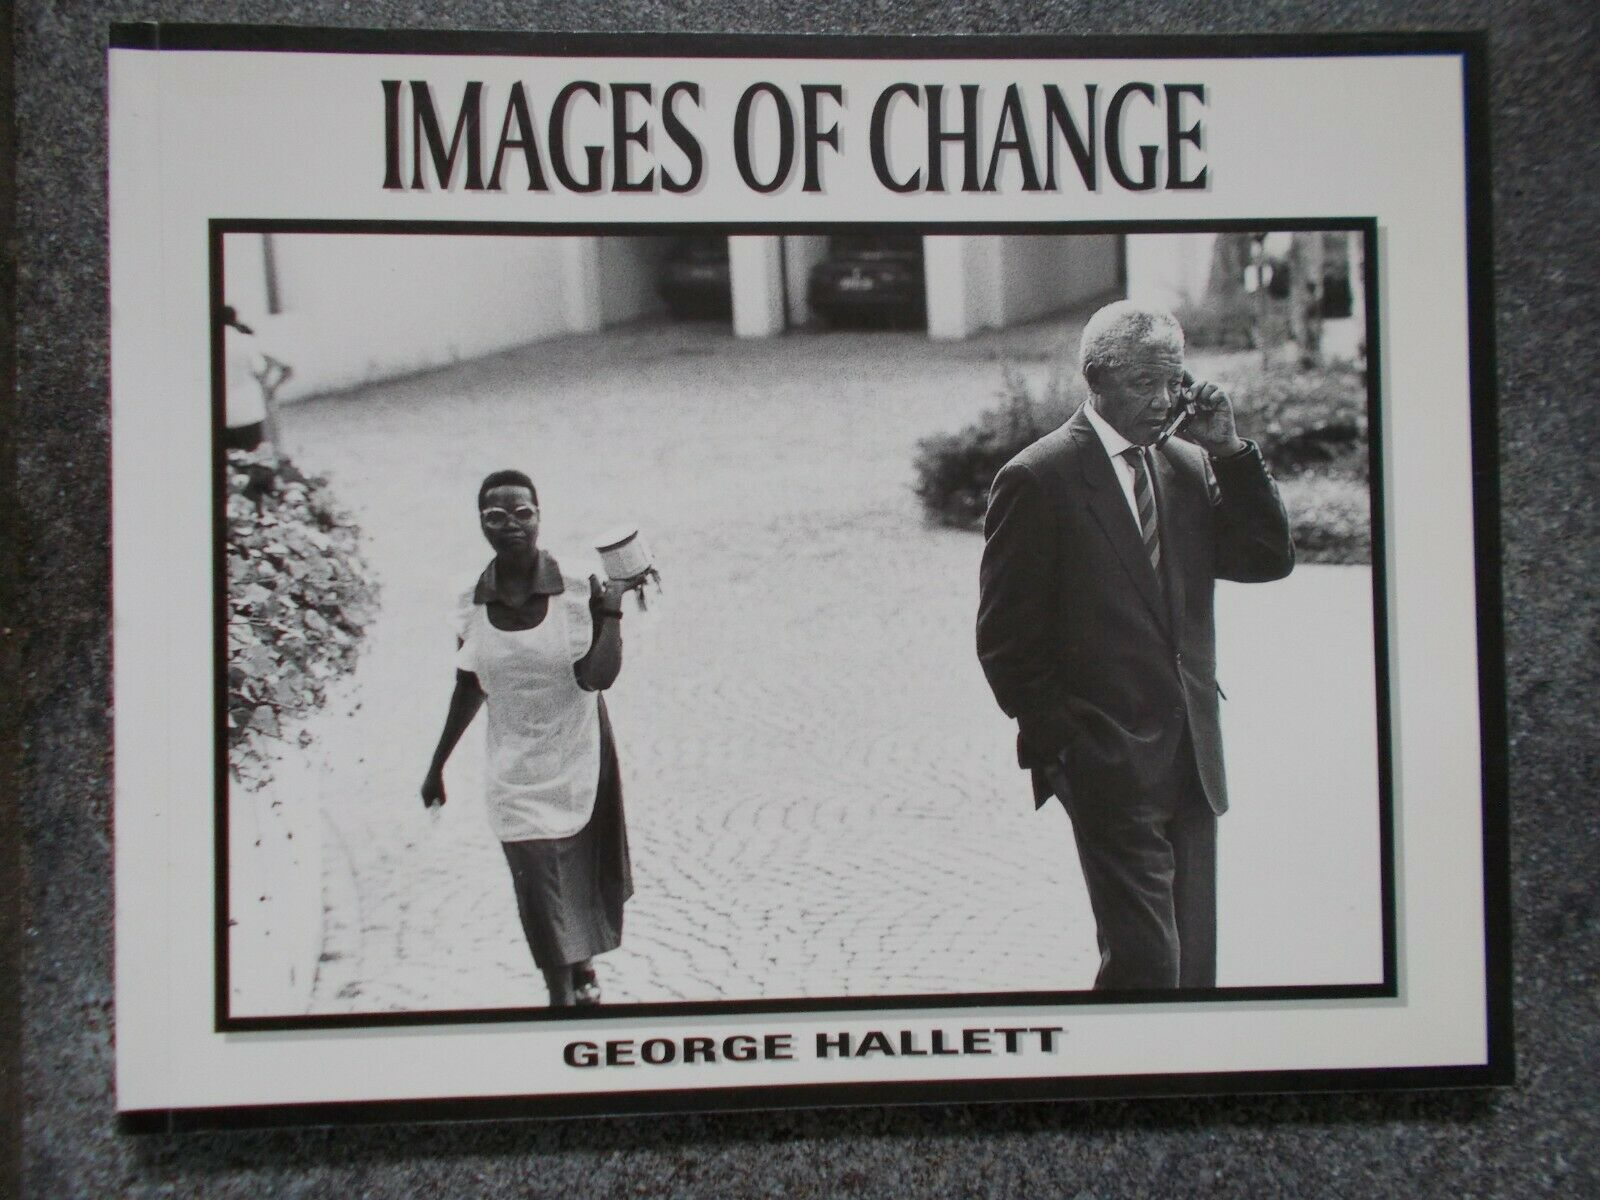 Images of Change (1995)